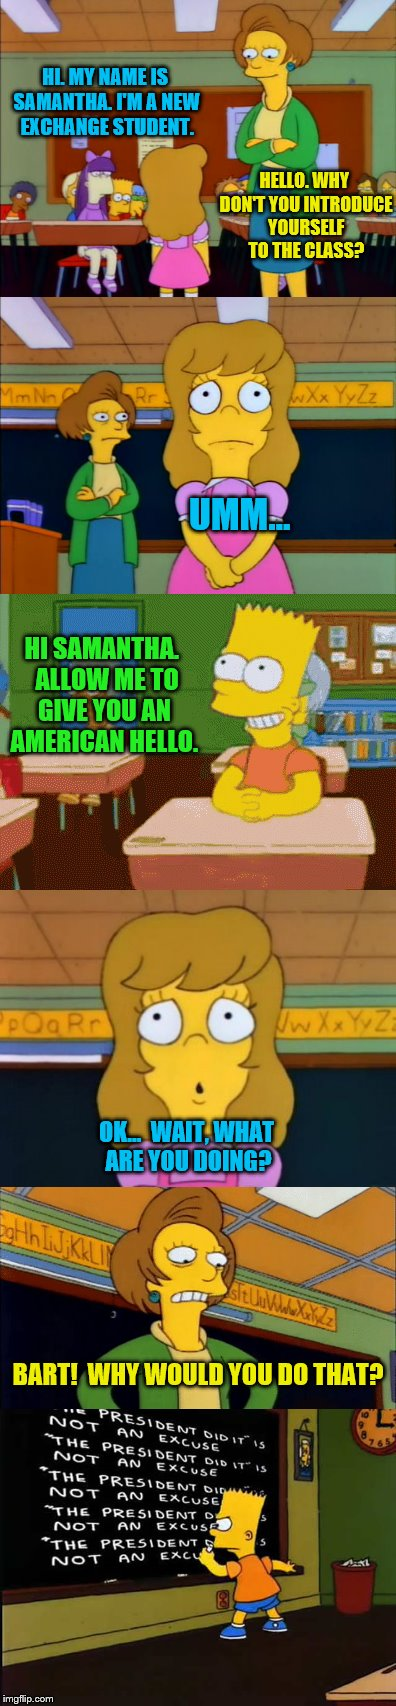 The Simpsons week (March 11th to 17th an A W_w event) |  HI. MY NAME IS SAMANTHA. I'M A NEW EXCHANGE STUDENT. HELLO. WHY DON'T YOU INTRODUCE YOURSELF TO THE CLASS? UMM... HI SAMANTHA.  ALLOW ME TO GIVE YOU AN AMERICAN HELLO. OK...  WAIT, WHAT ARE YOU DOING? BART!  WHY WOULD YOU DO THAT? | image tagged in memes,the simpsons week,new kid samantha,bart,the president did it | made w/ Imgflip meme maker